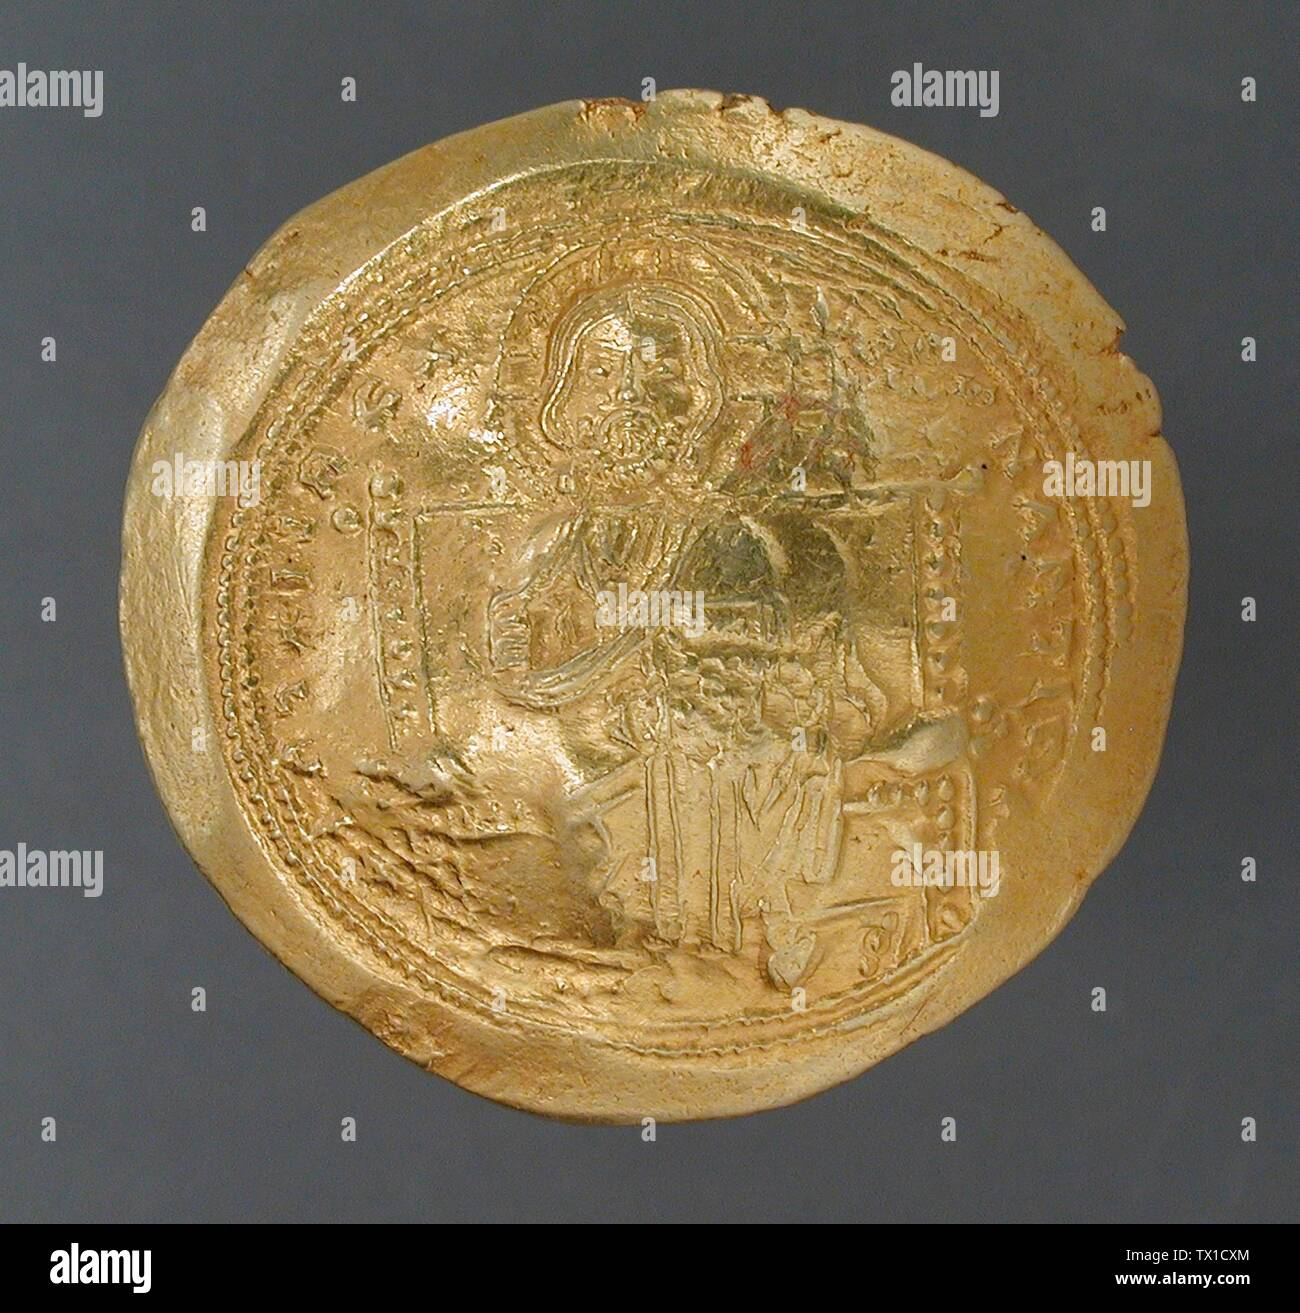 'Coin, Isaac I Commenus (image 1 of 2); English:  Constantinople, Byzantine, circa 1057-1059 A.D. Tools and Equipment; coins Gold Diameter: 1 1/16 in. (2.6 cm) Museum Associates Acquisition Fund (M.82.15.6) Art of the Ancient Near East; between circa 1057 and circa 1059 date QS:P571,+1057-00-00T00:00:00Z/8,P1319,+1057-00-00T00:00:00Z/9,P1326,+1059-00-00T00:00:00Z/9,P1480,Q5727902 A.D.; ' - Stock Image